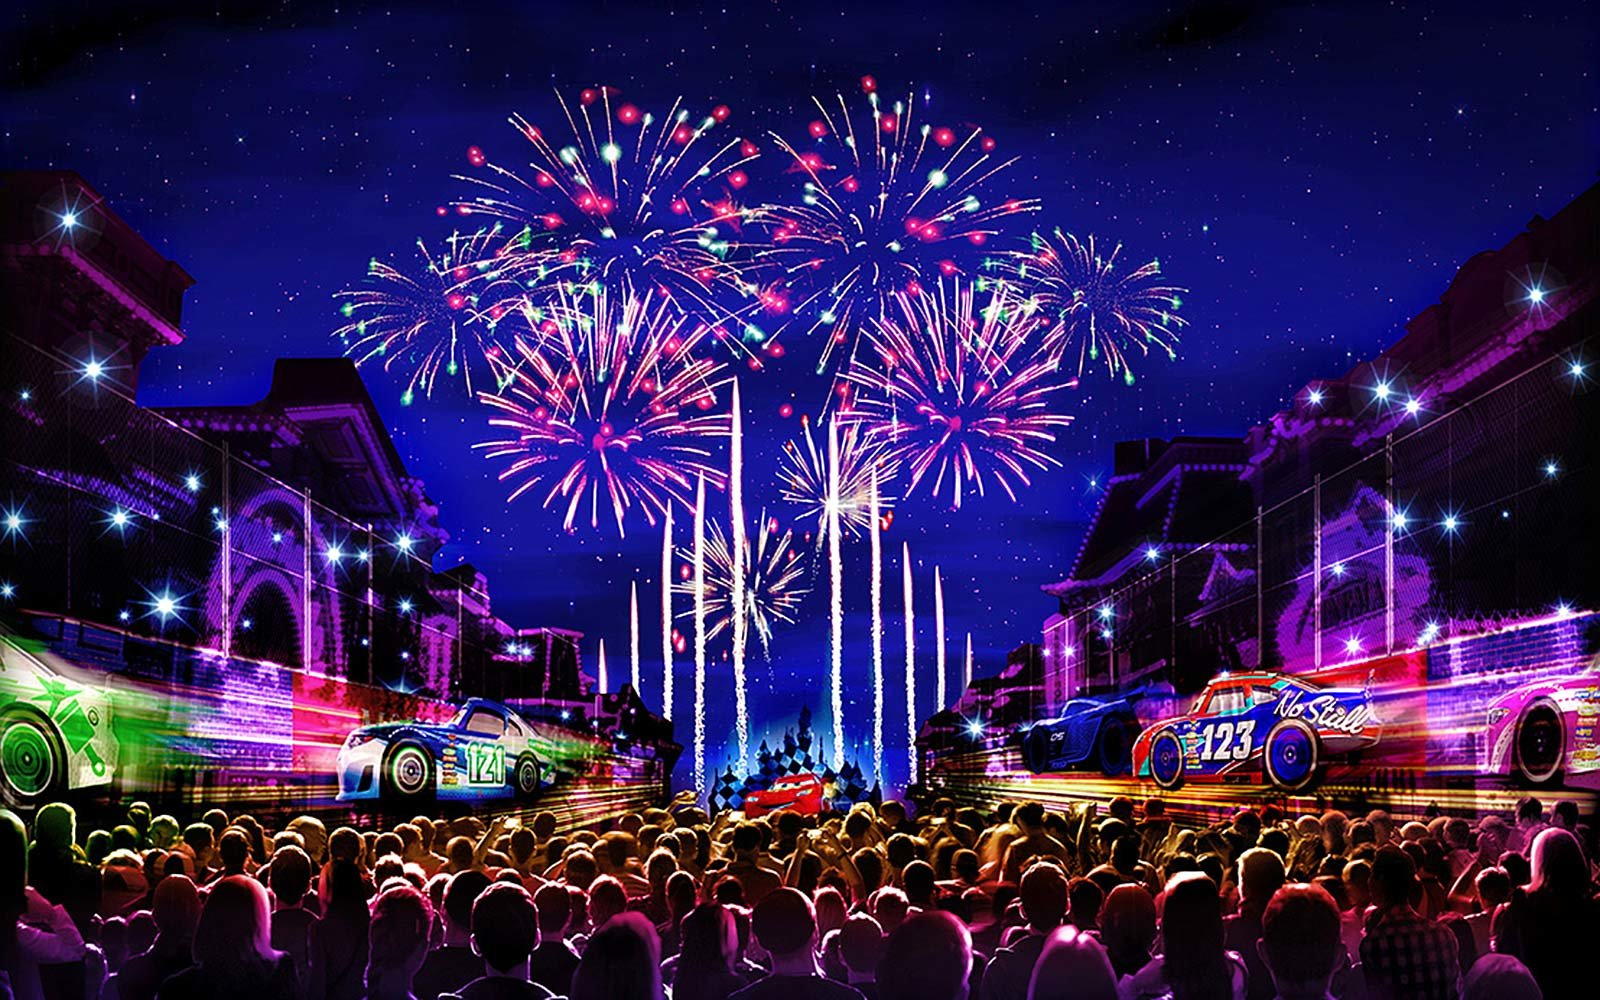 Pixar Fest Coming to Disneyland in 2018